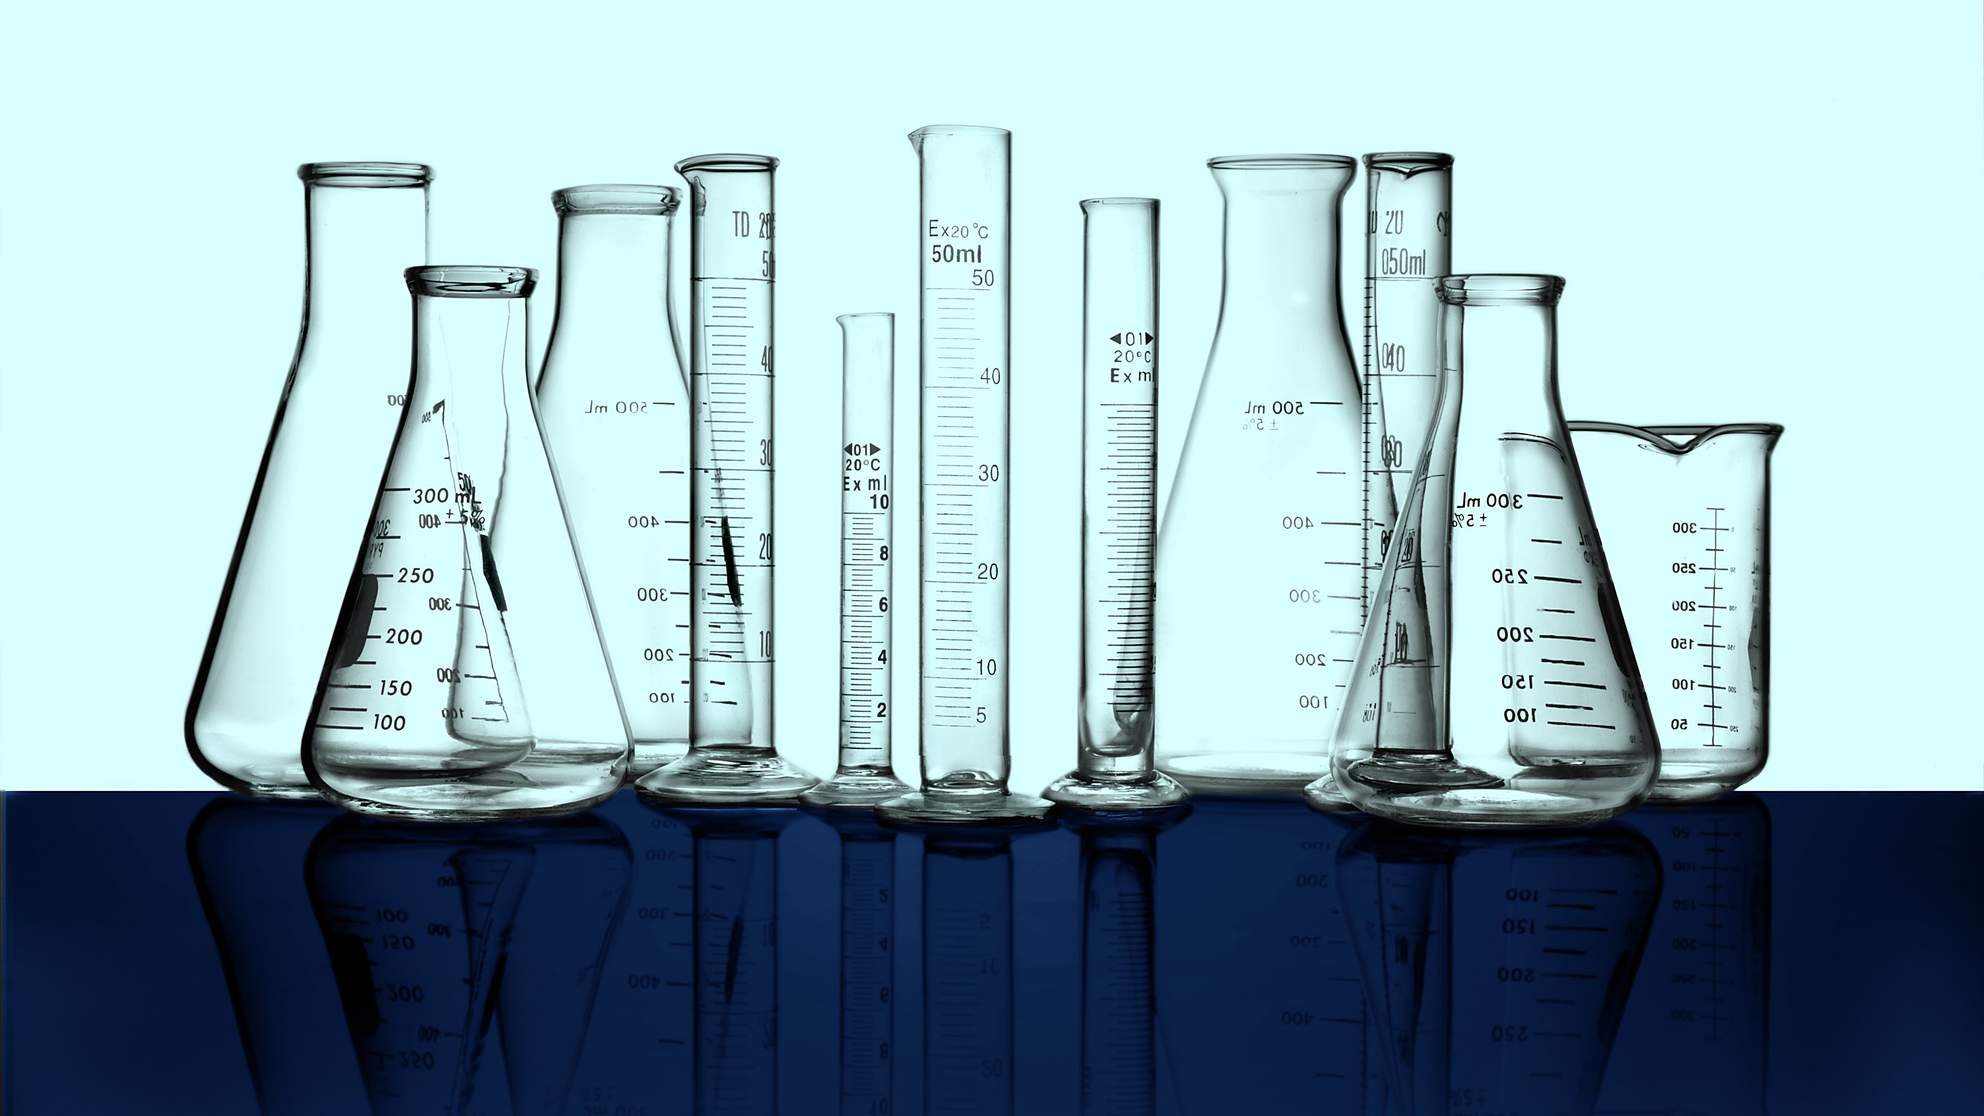 science_test tubes_beakers_light green background TIME health stock